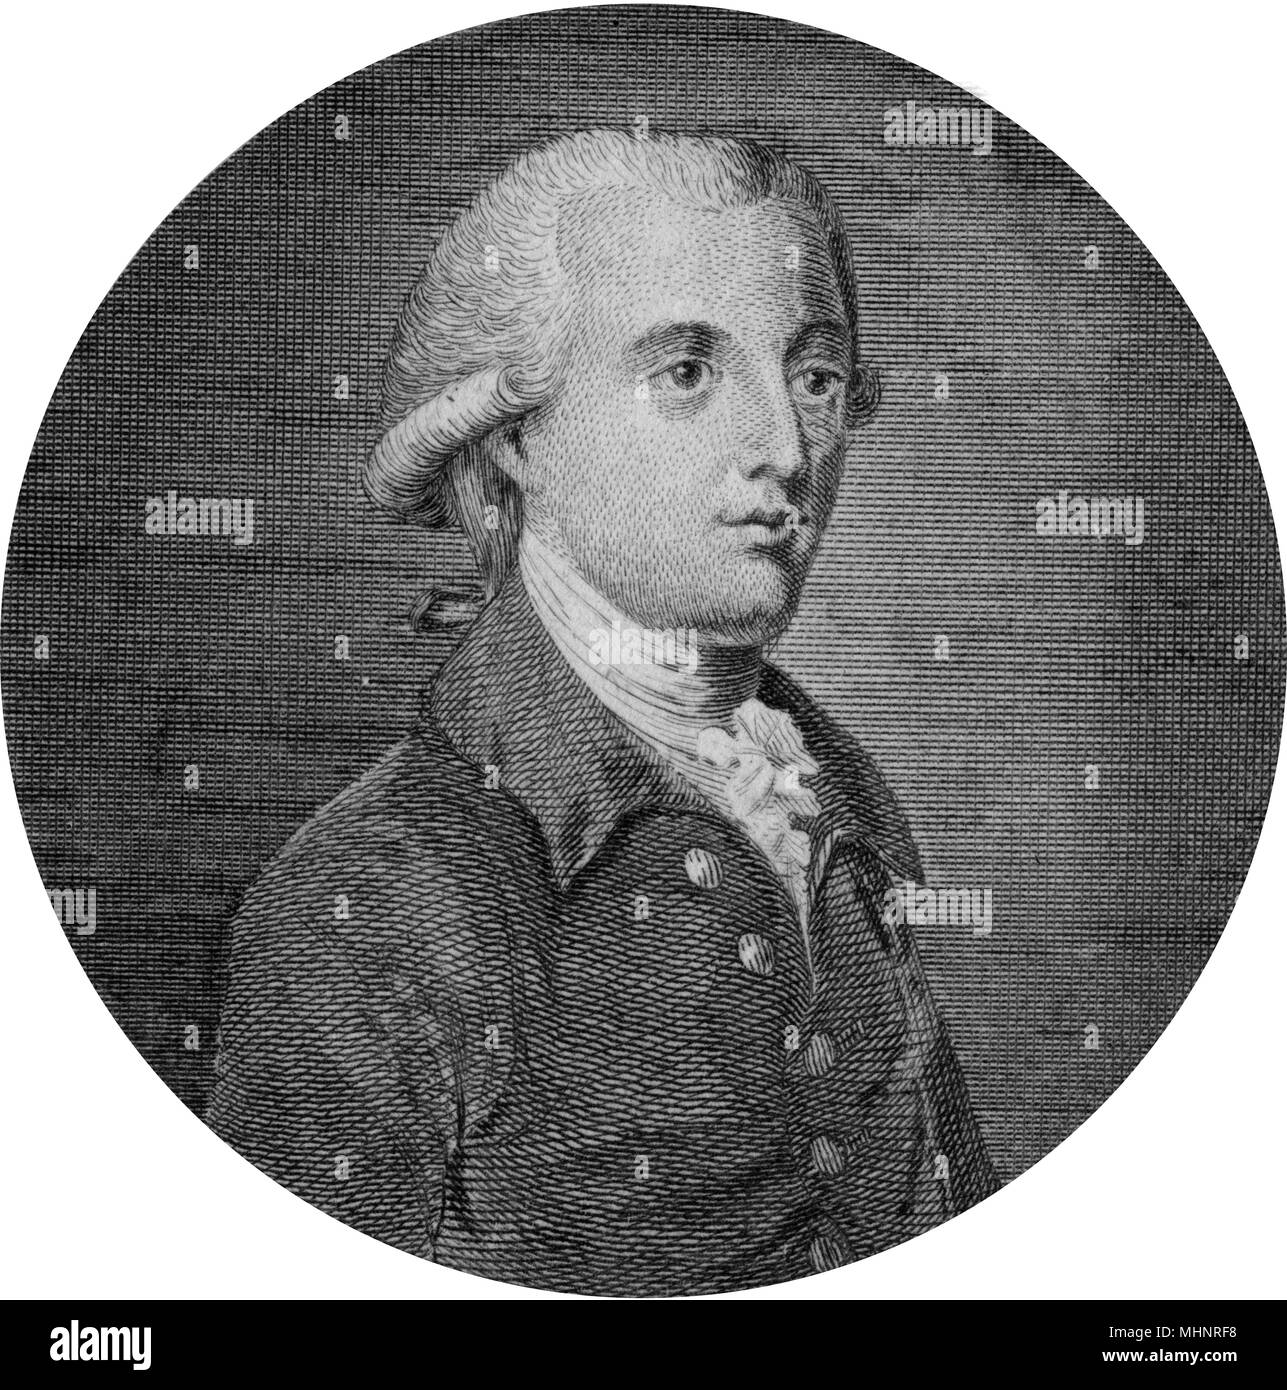 Pitt, William the Younger (1759-1806) - British politician (Tory), Prime Minister.     Date: circa 1780s - Stock Image